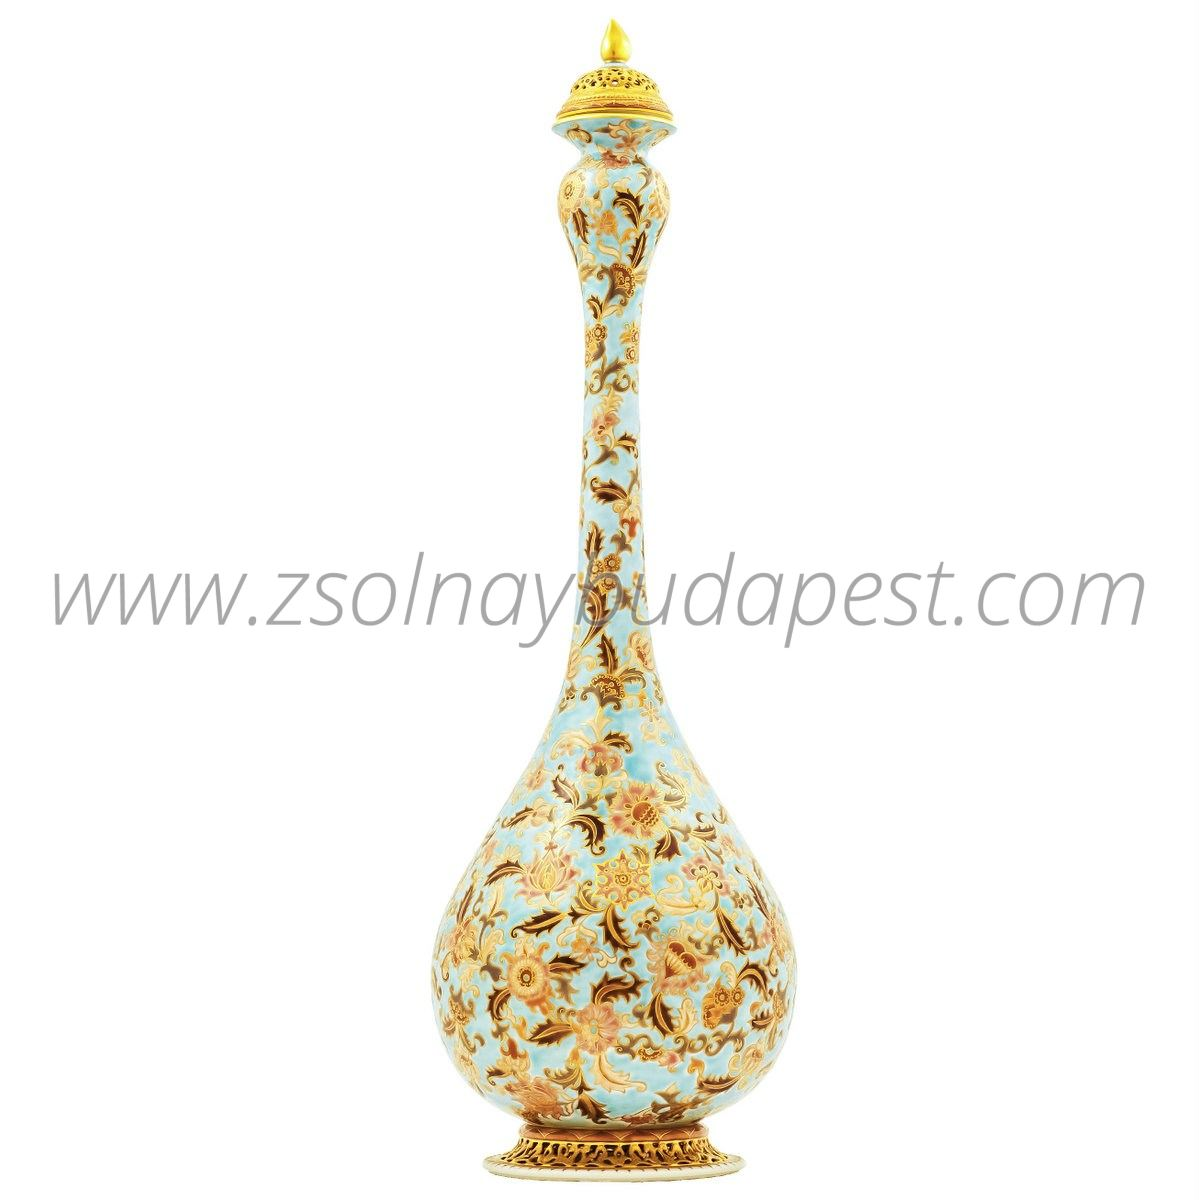 Long neck Arabic vase - Limited edition